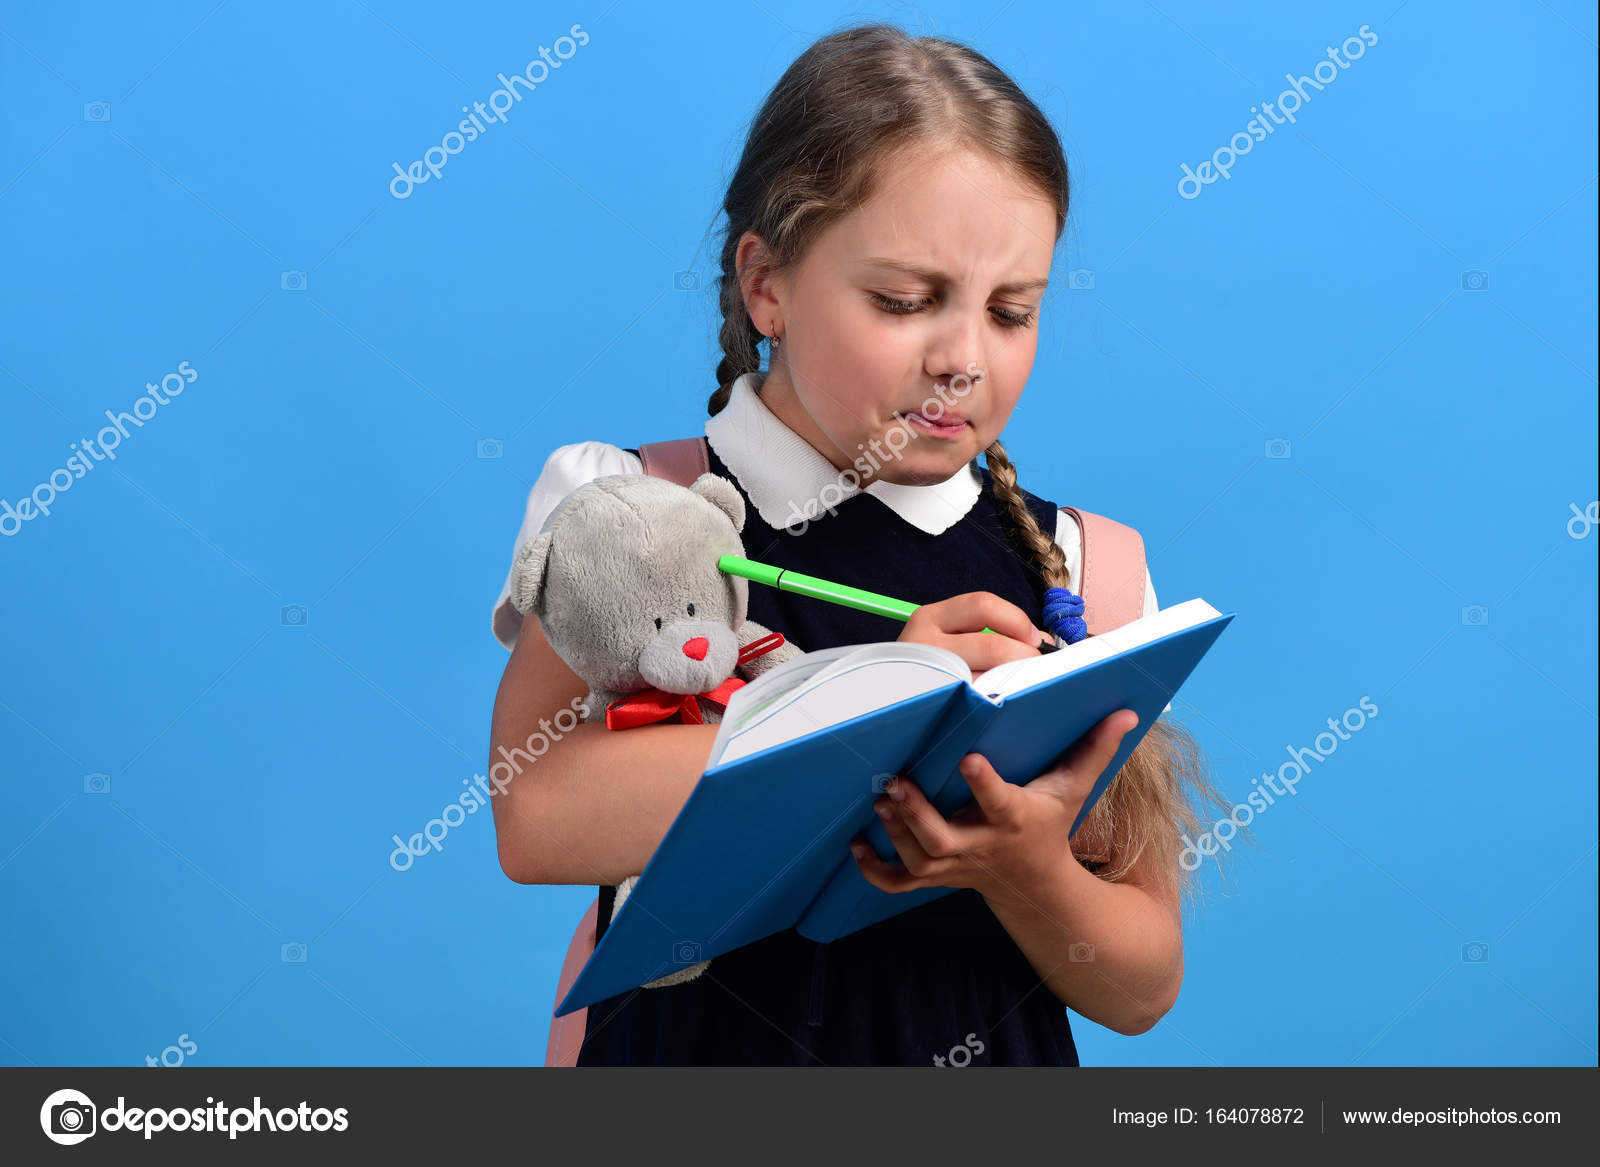 Pupil In School Uniform With Braids. Girl Holds Teddy Bear U2014 Stock Photo